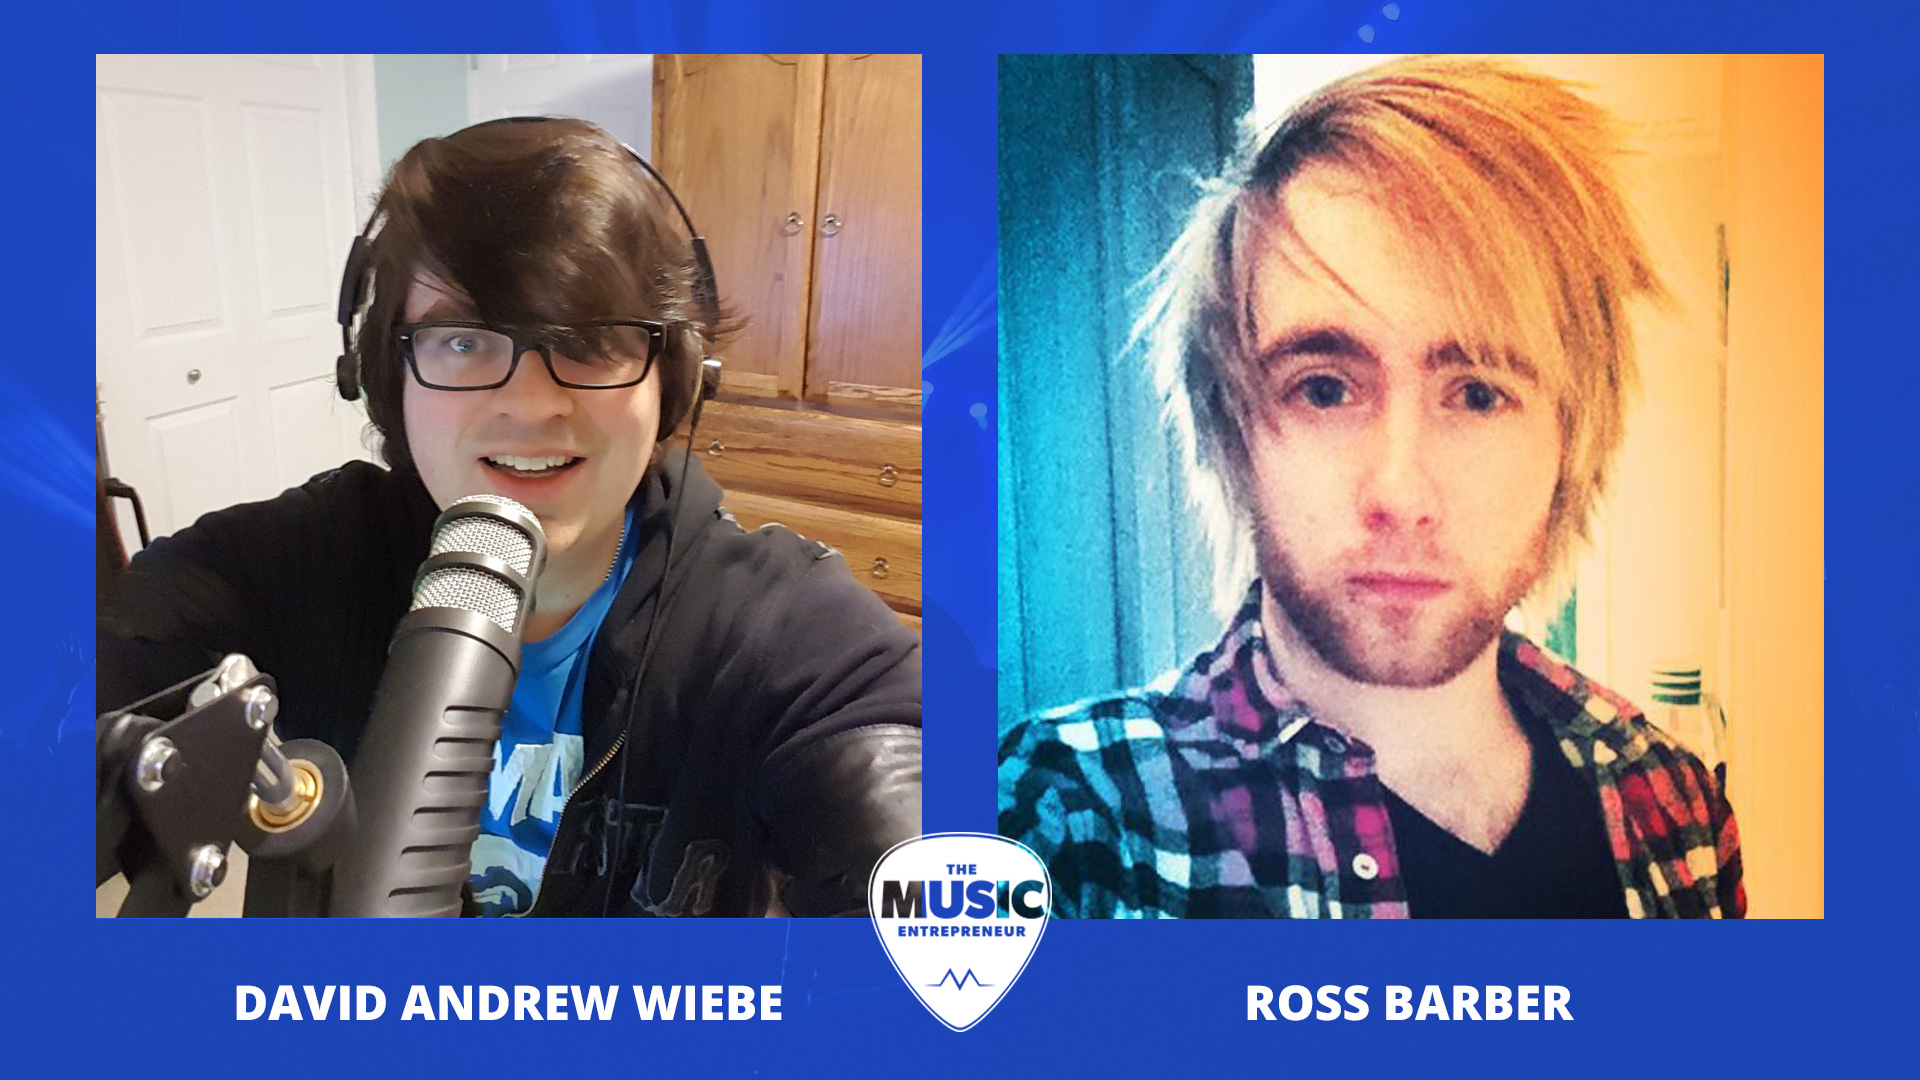 003 - The Value of Having Your Own Website as a Musician - with Ross Barber of Electric Kiwi